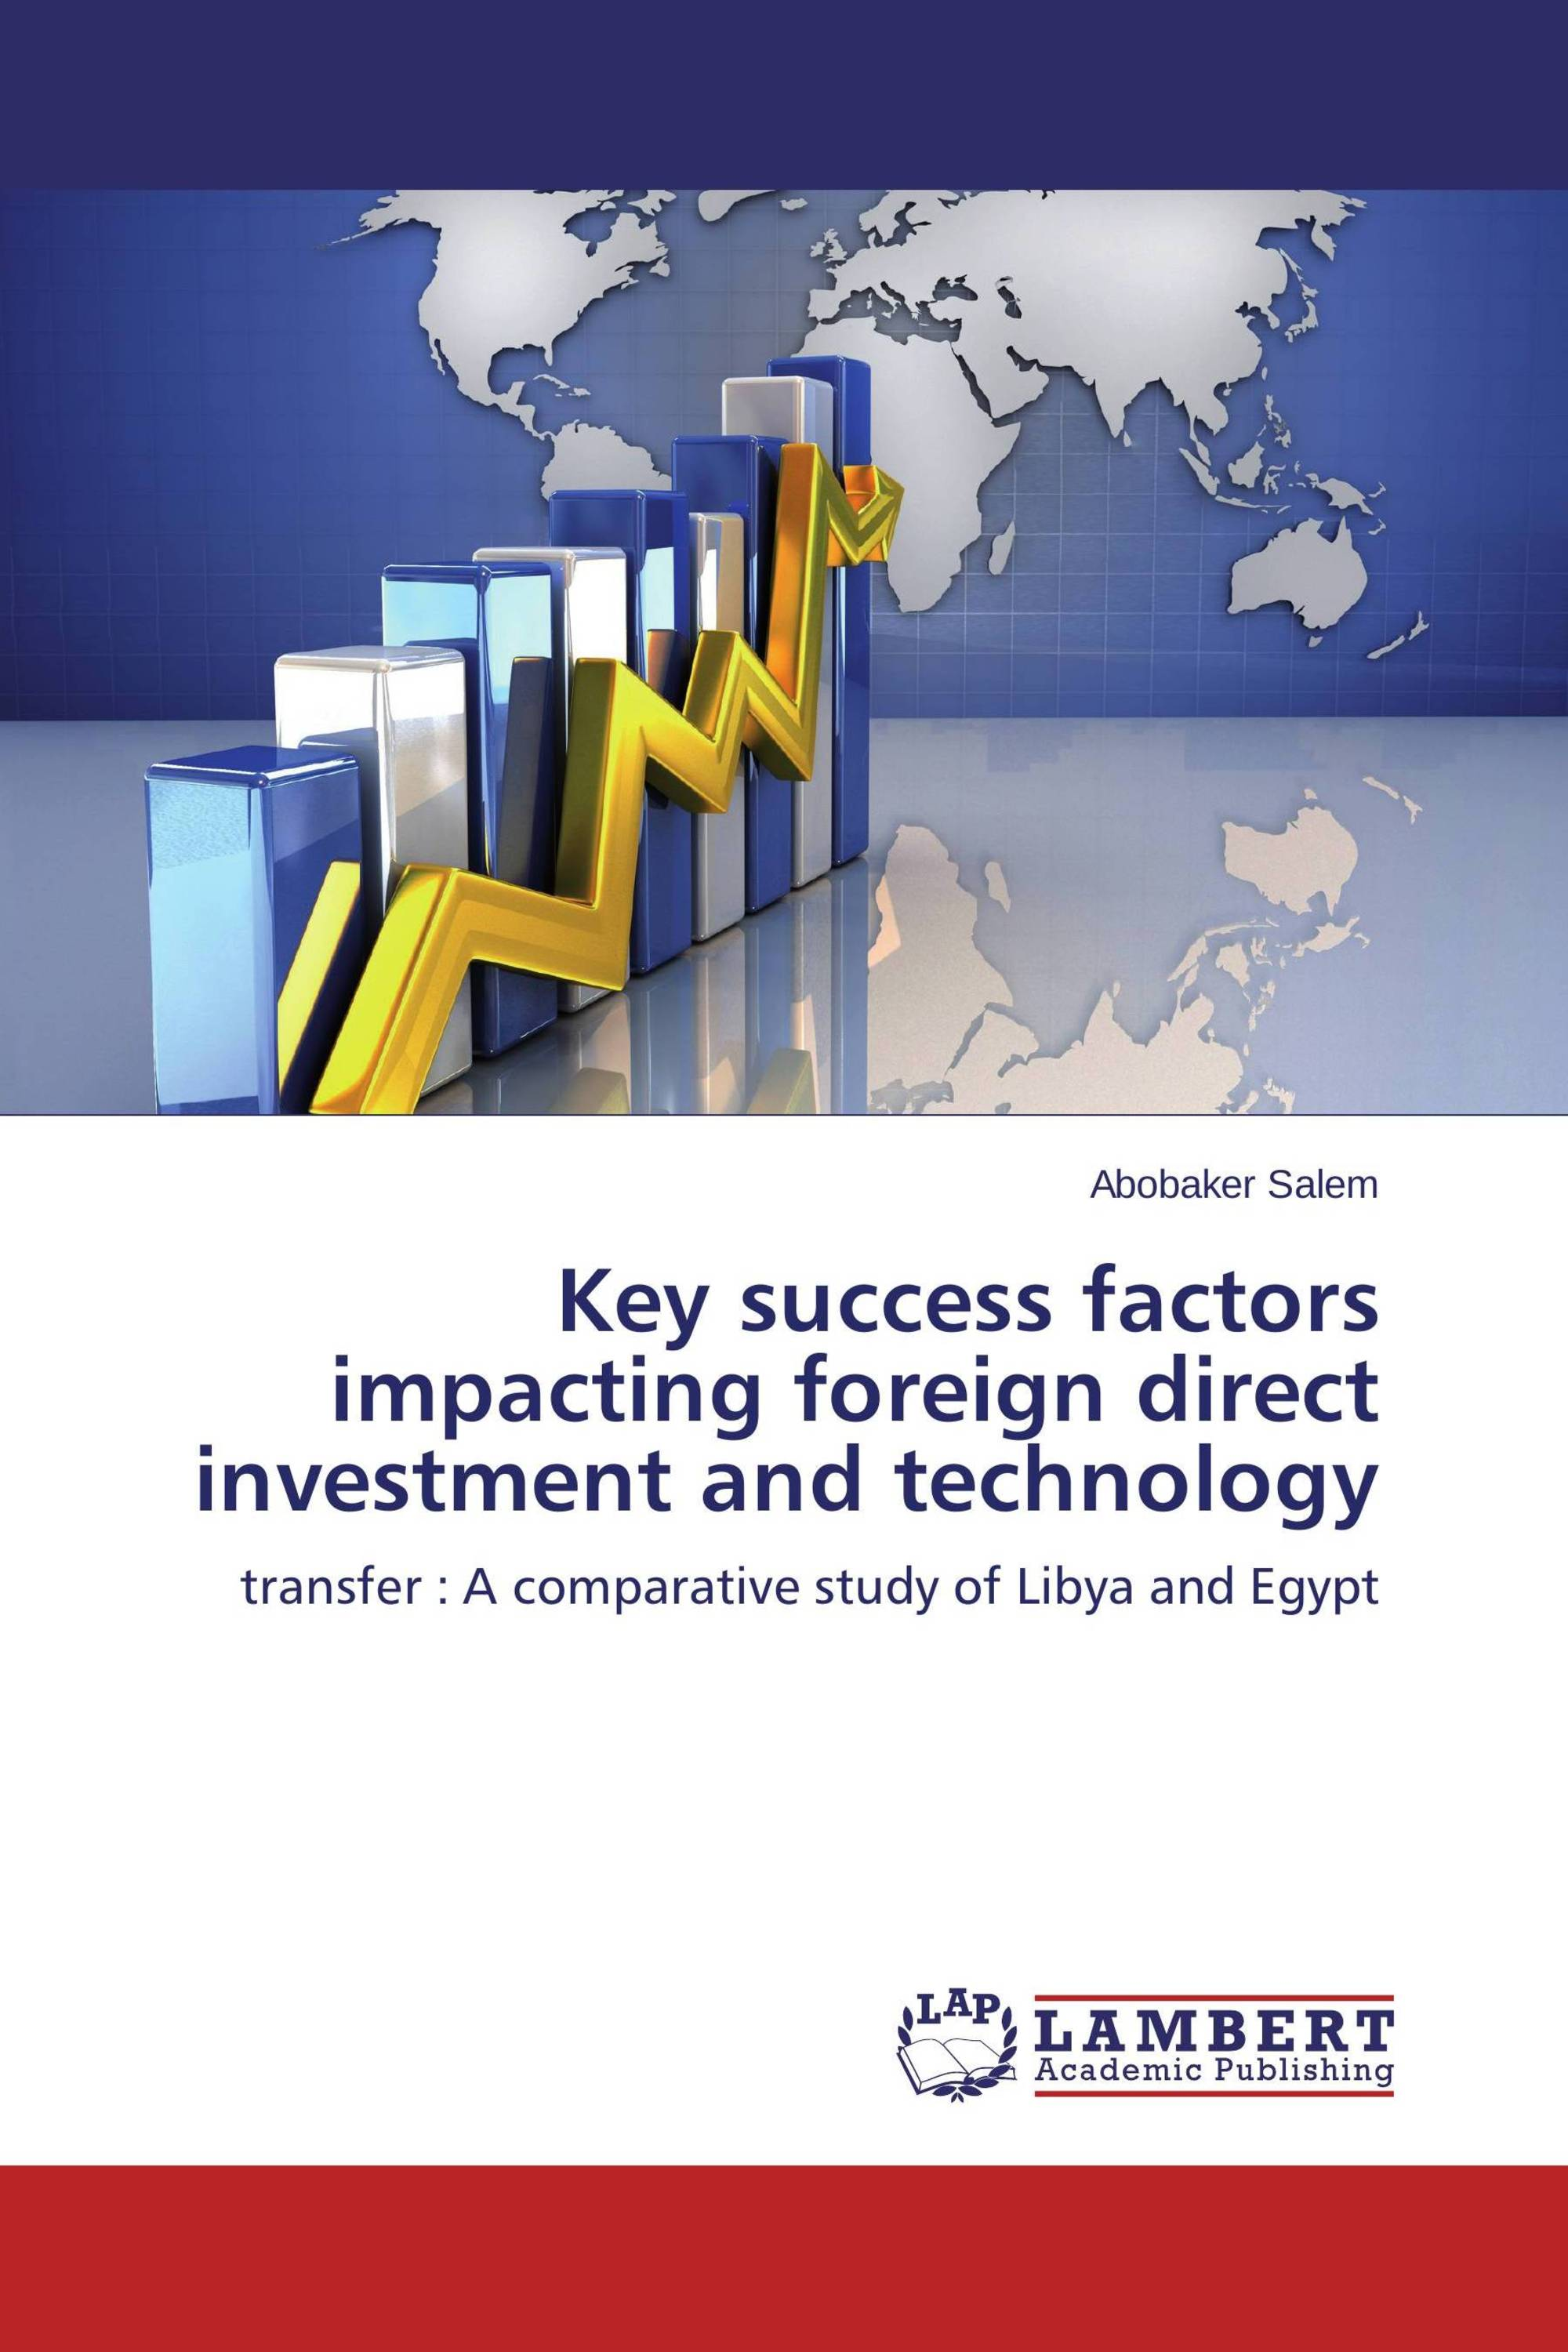 economic analysis of foreign direct investment News release from the us department of commerce's bureau of economic analysis: direct investment in the united states will foreign direct investment.